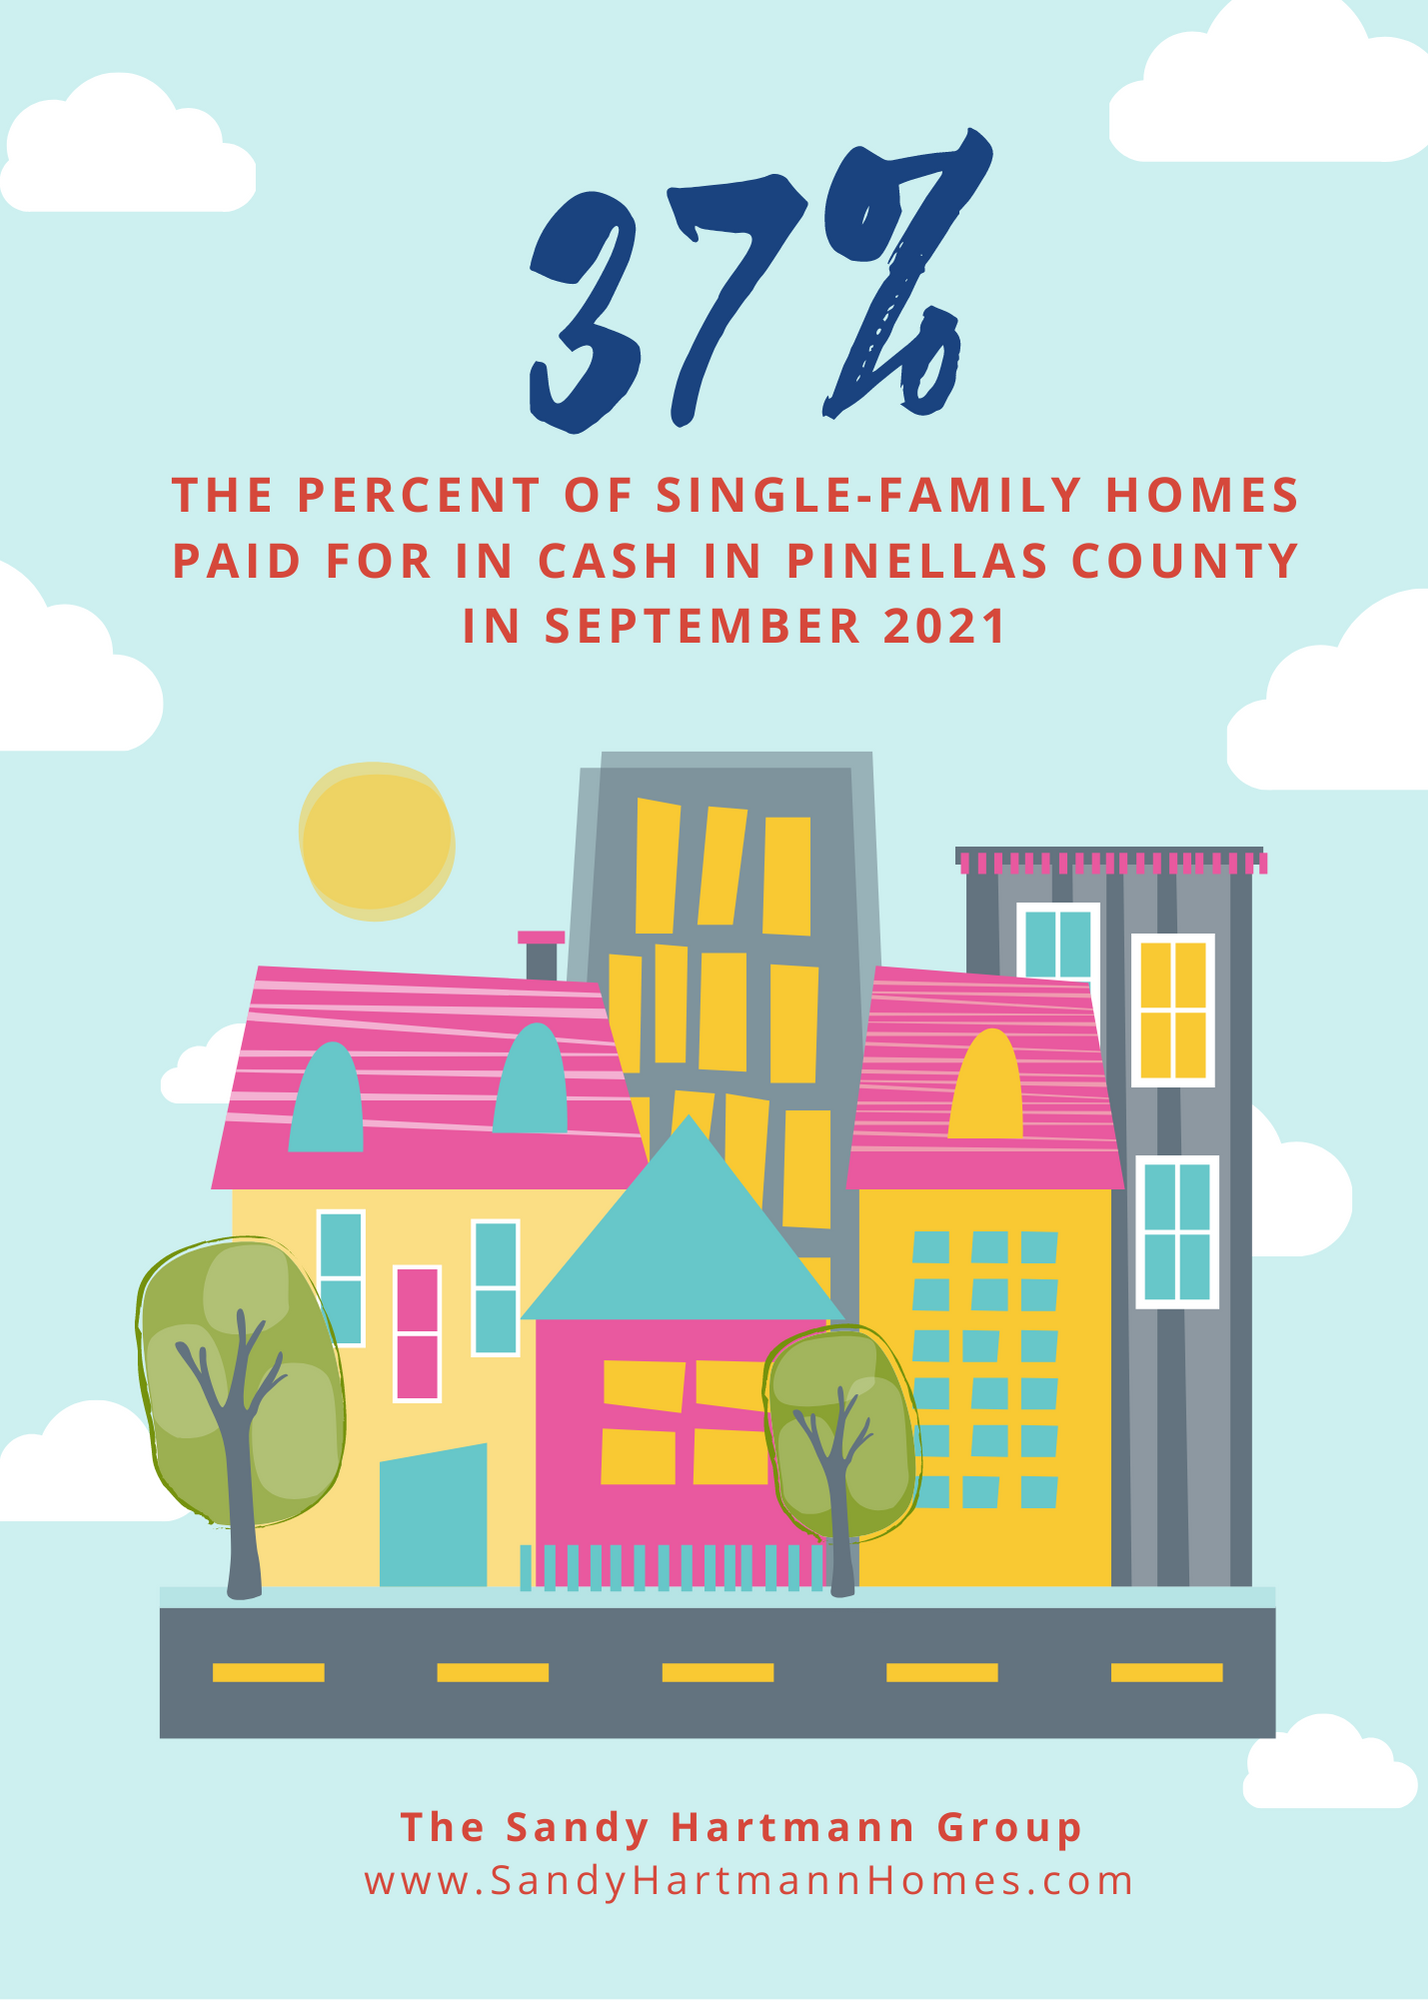 Percent of homes paid for in cash in Pinellas County in September 2021